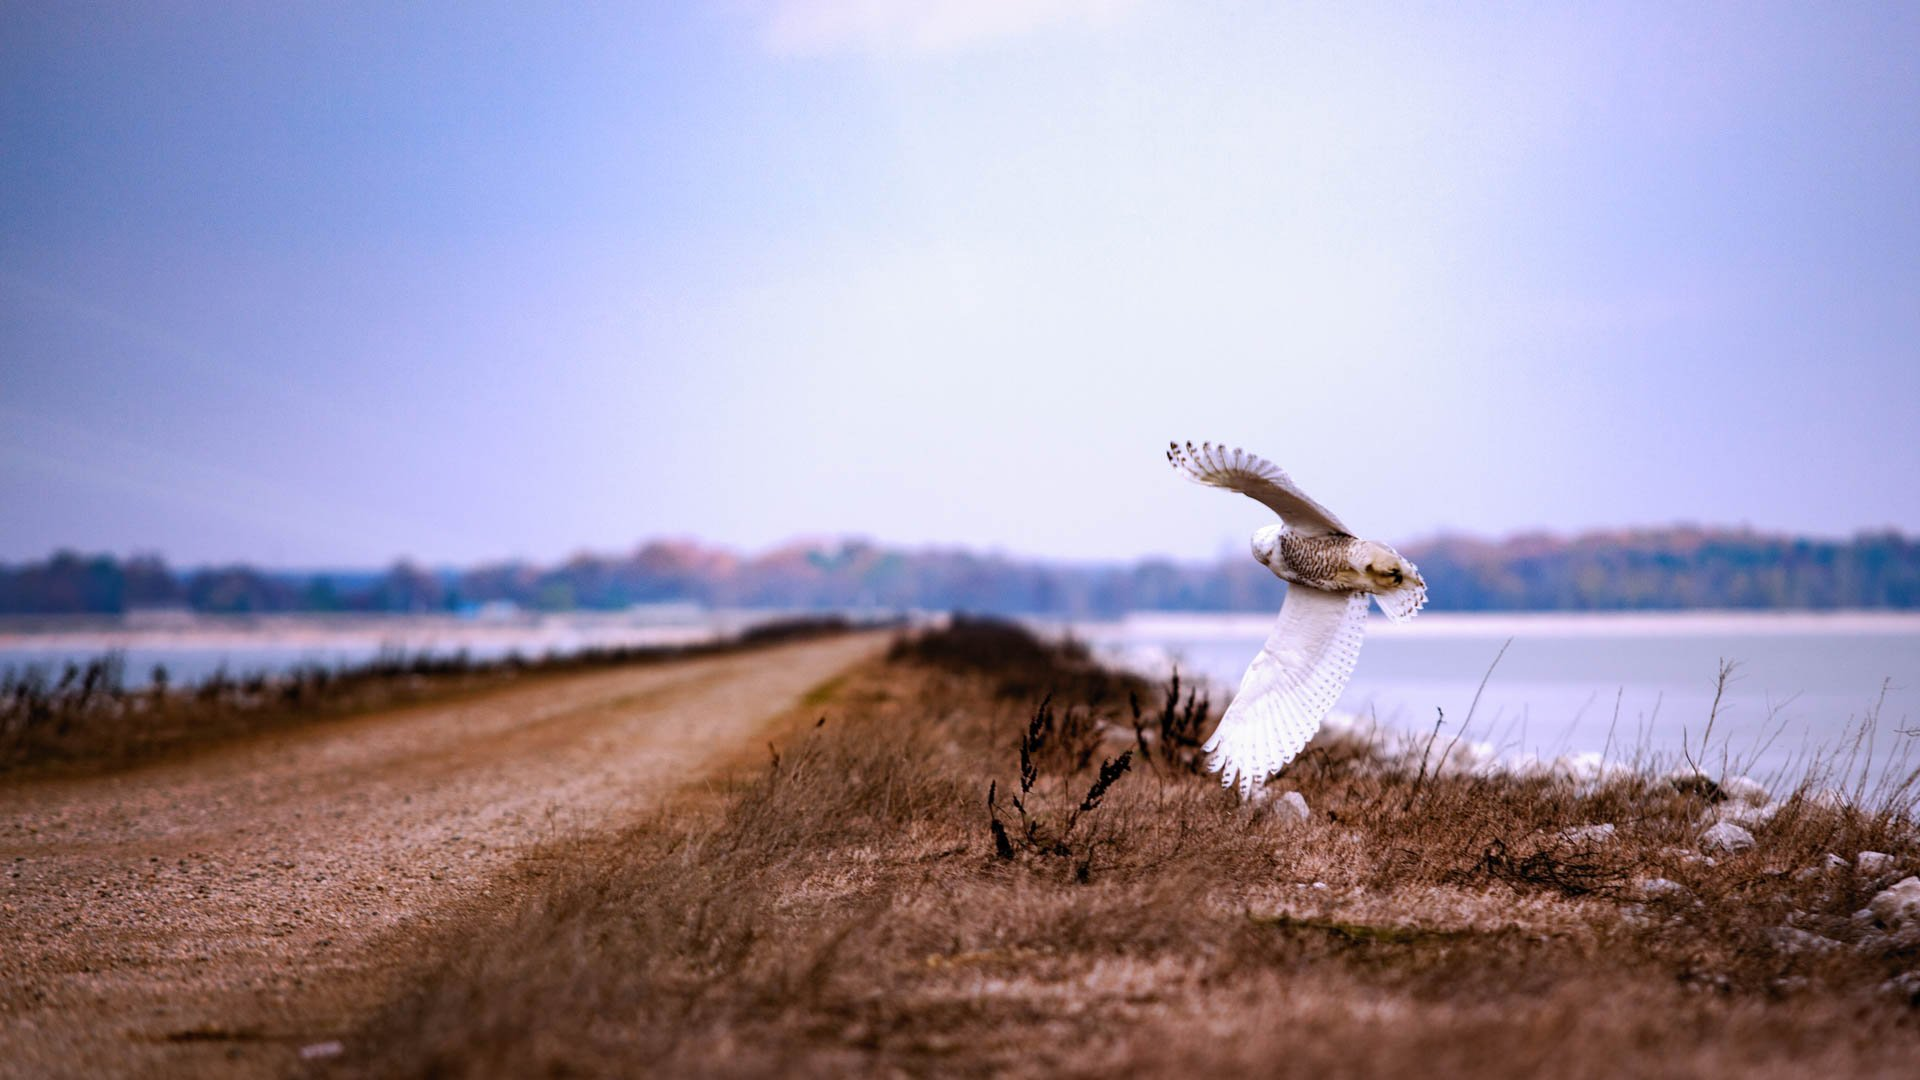 Is Baiting Wild Birds For Photography Ethical?